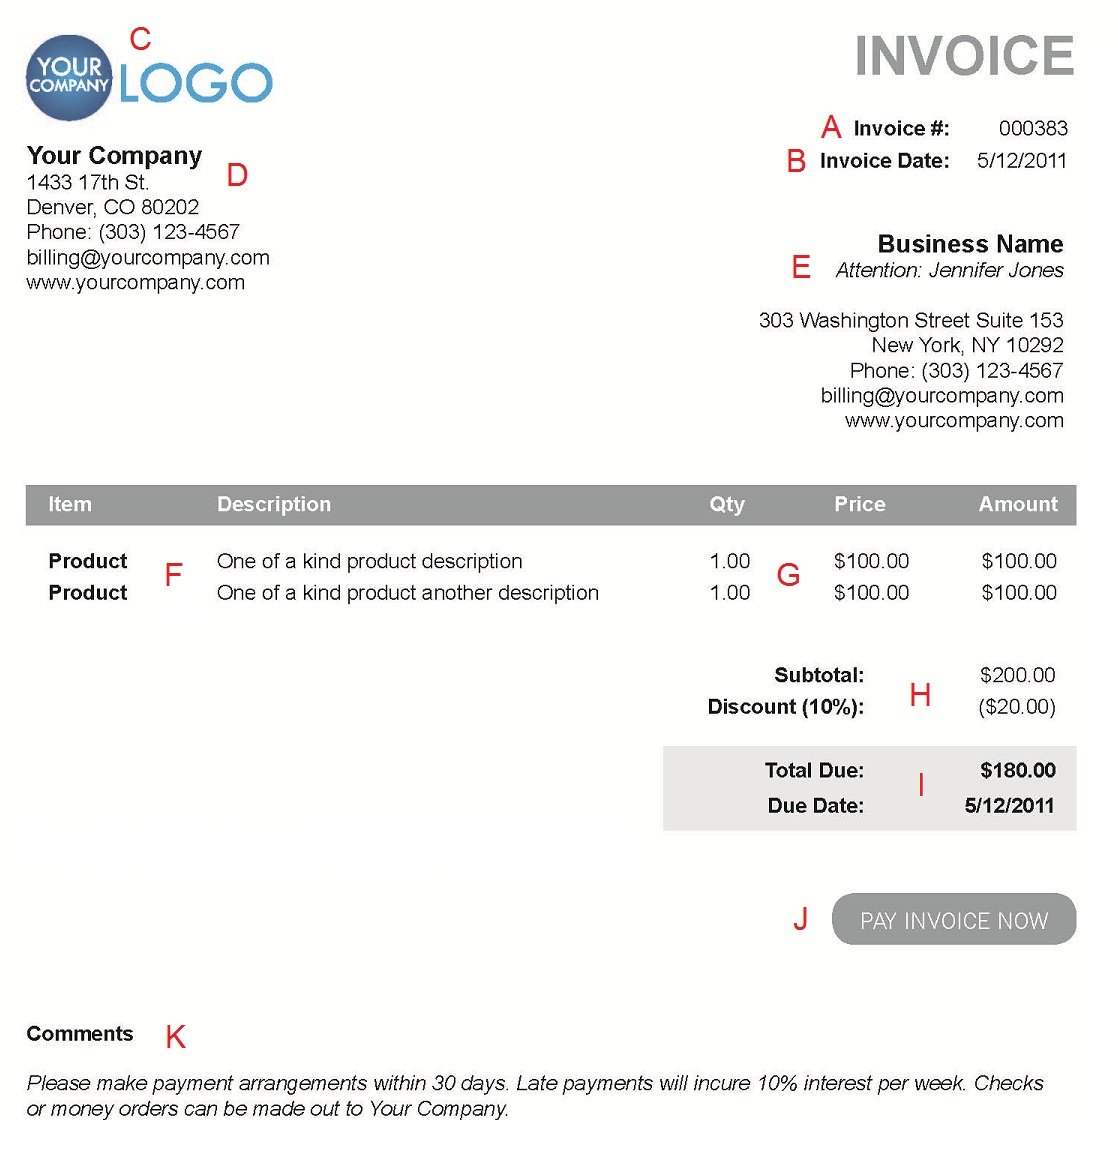 Reliefworkersus  Marvellous The  Different Sections Of An Electronic Payment Invoice With Heavenly A  With Adorable Payable Invoices Also Invoice Vs Quote In Addition Making Invoices And Car Invoice Prices  As Well As Customize Invoice Quickbooks Additionally Timesheet Invoice Template From Paysimplecom With Reliefworkersus  Heavenly The  Different Sections Of An Electronic Payment Invoice With Adorable A  And Marvellous Payable Invoices Also Invoice Vs Quote In Addition Making Invoices From Paysimplecom